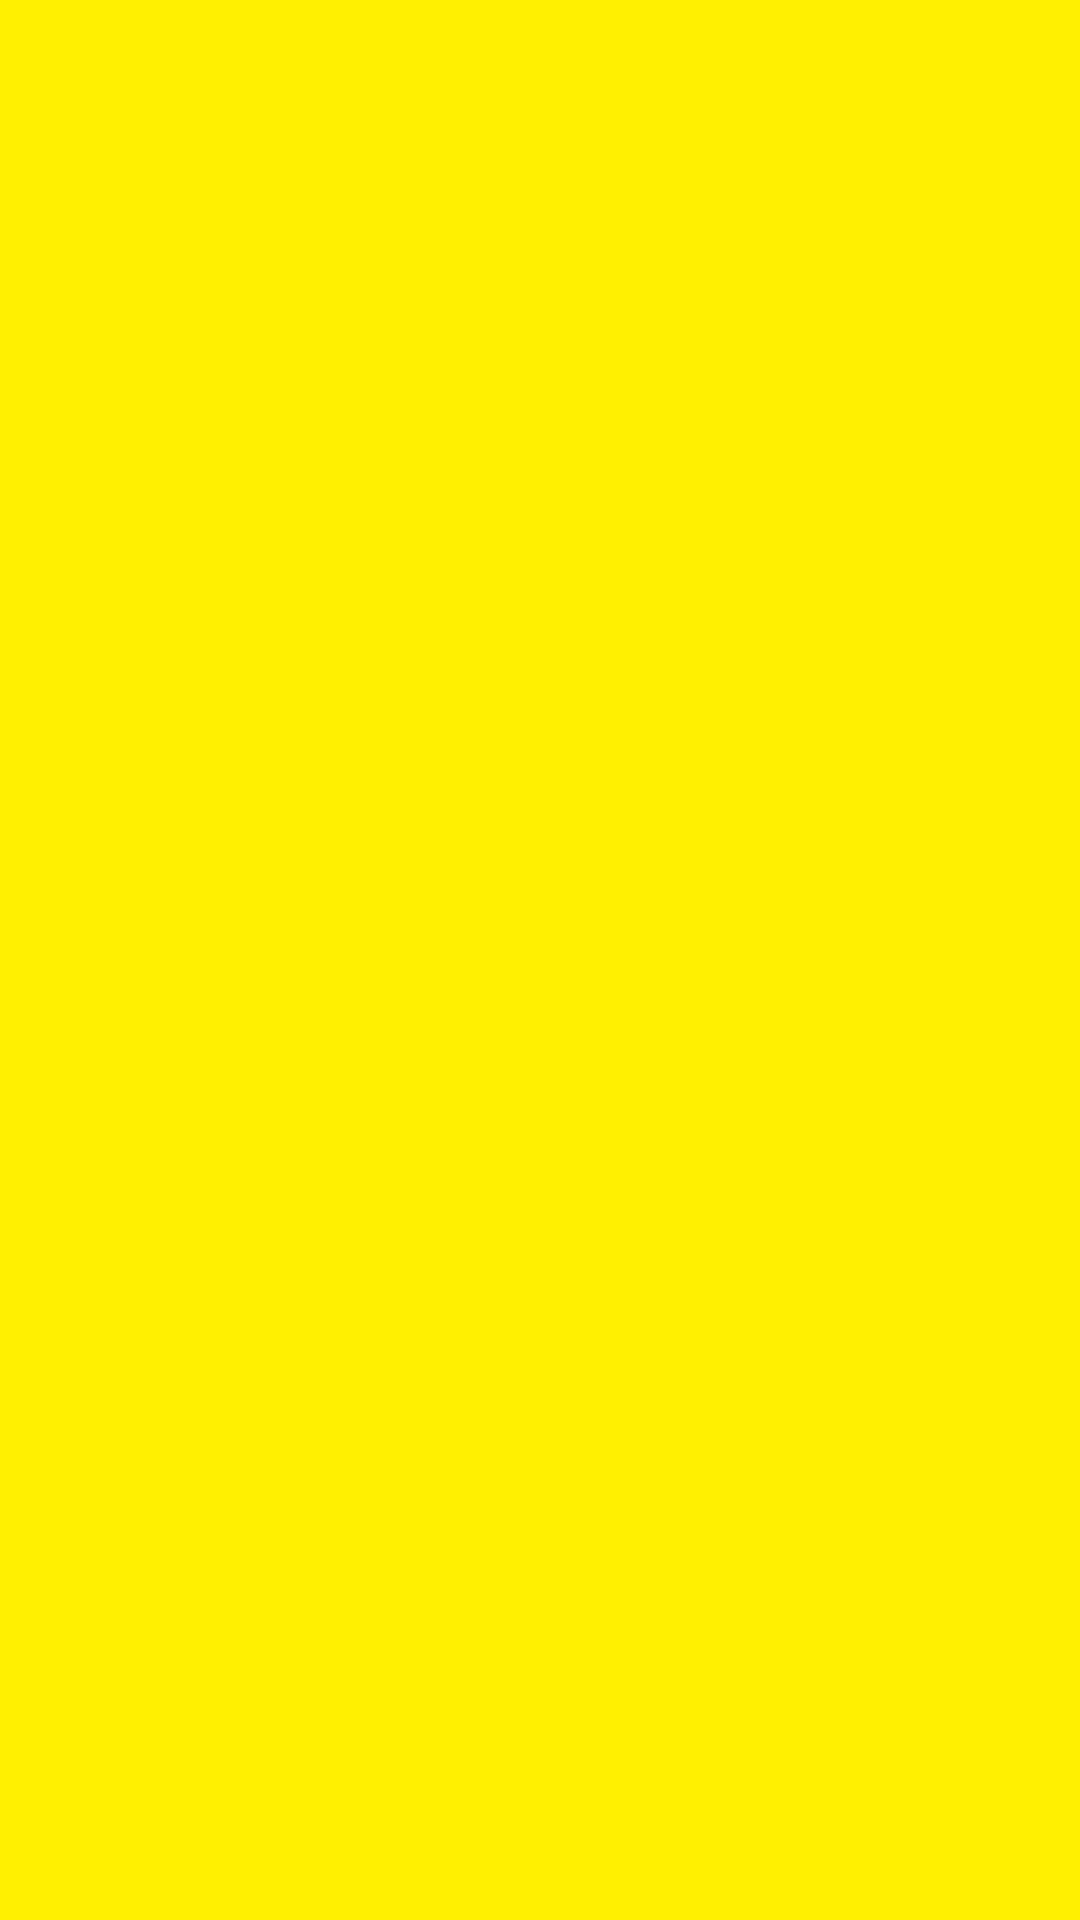 1080x1920 Canary Yellow Solid Color Background